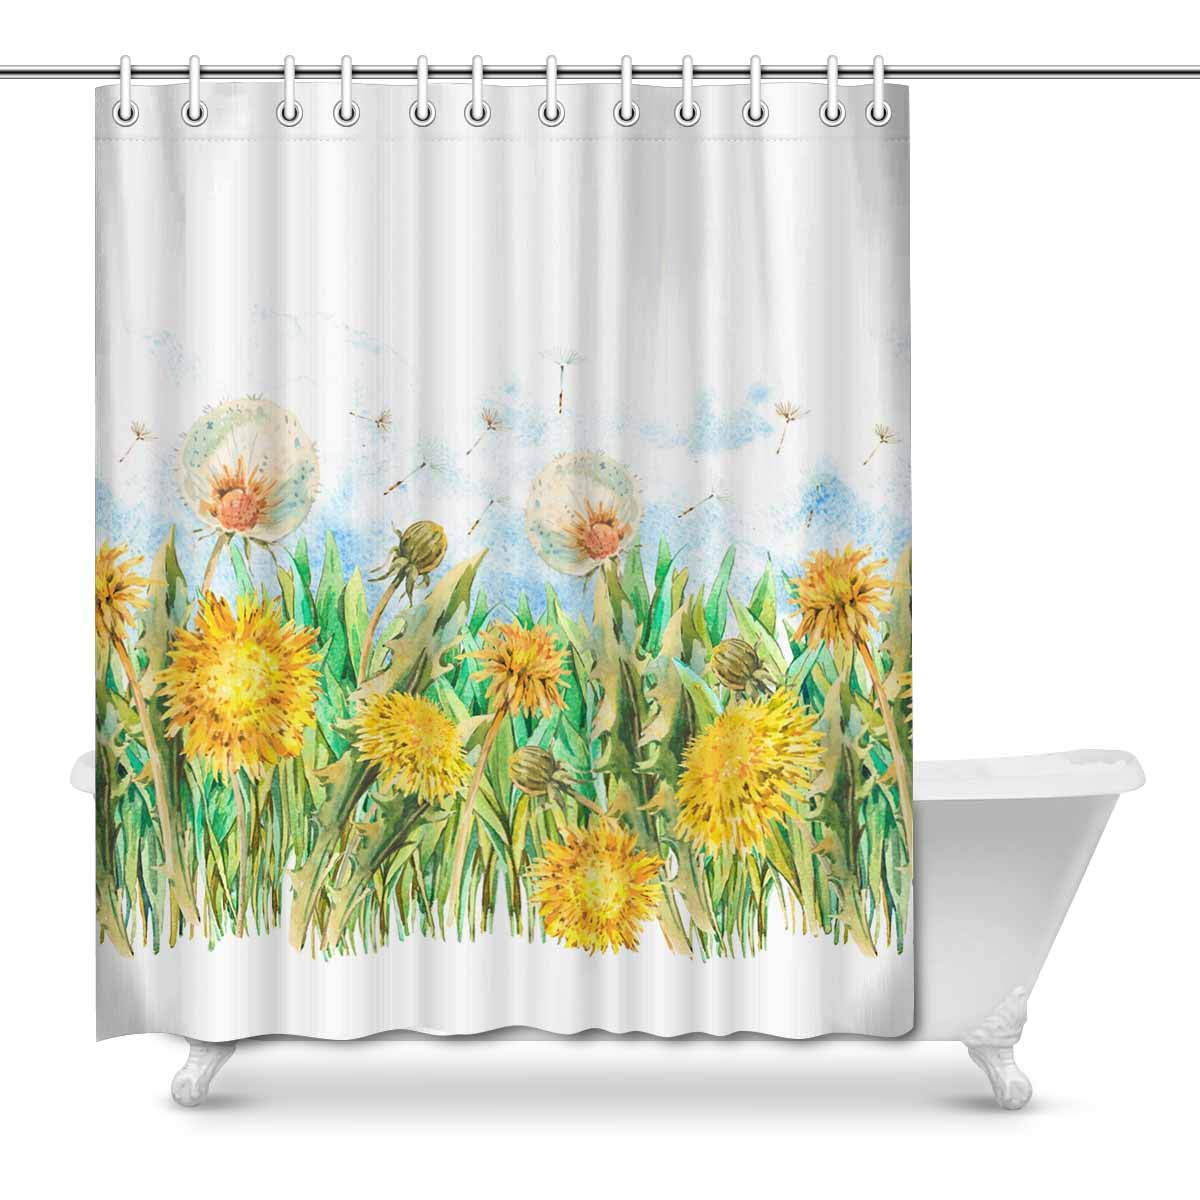 YUSDECOR Watercolor Spring Flowers Yellow White Dandelions Butterfly House  Decor Shower Curtain Bathroom Decorative Bathroom Shower Curtain Set Rings